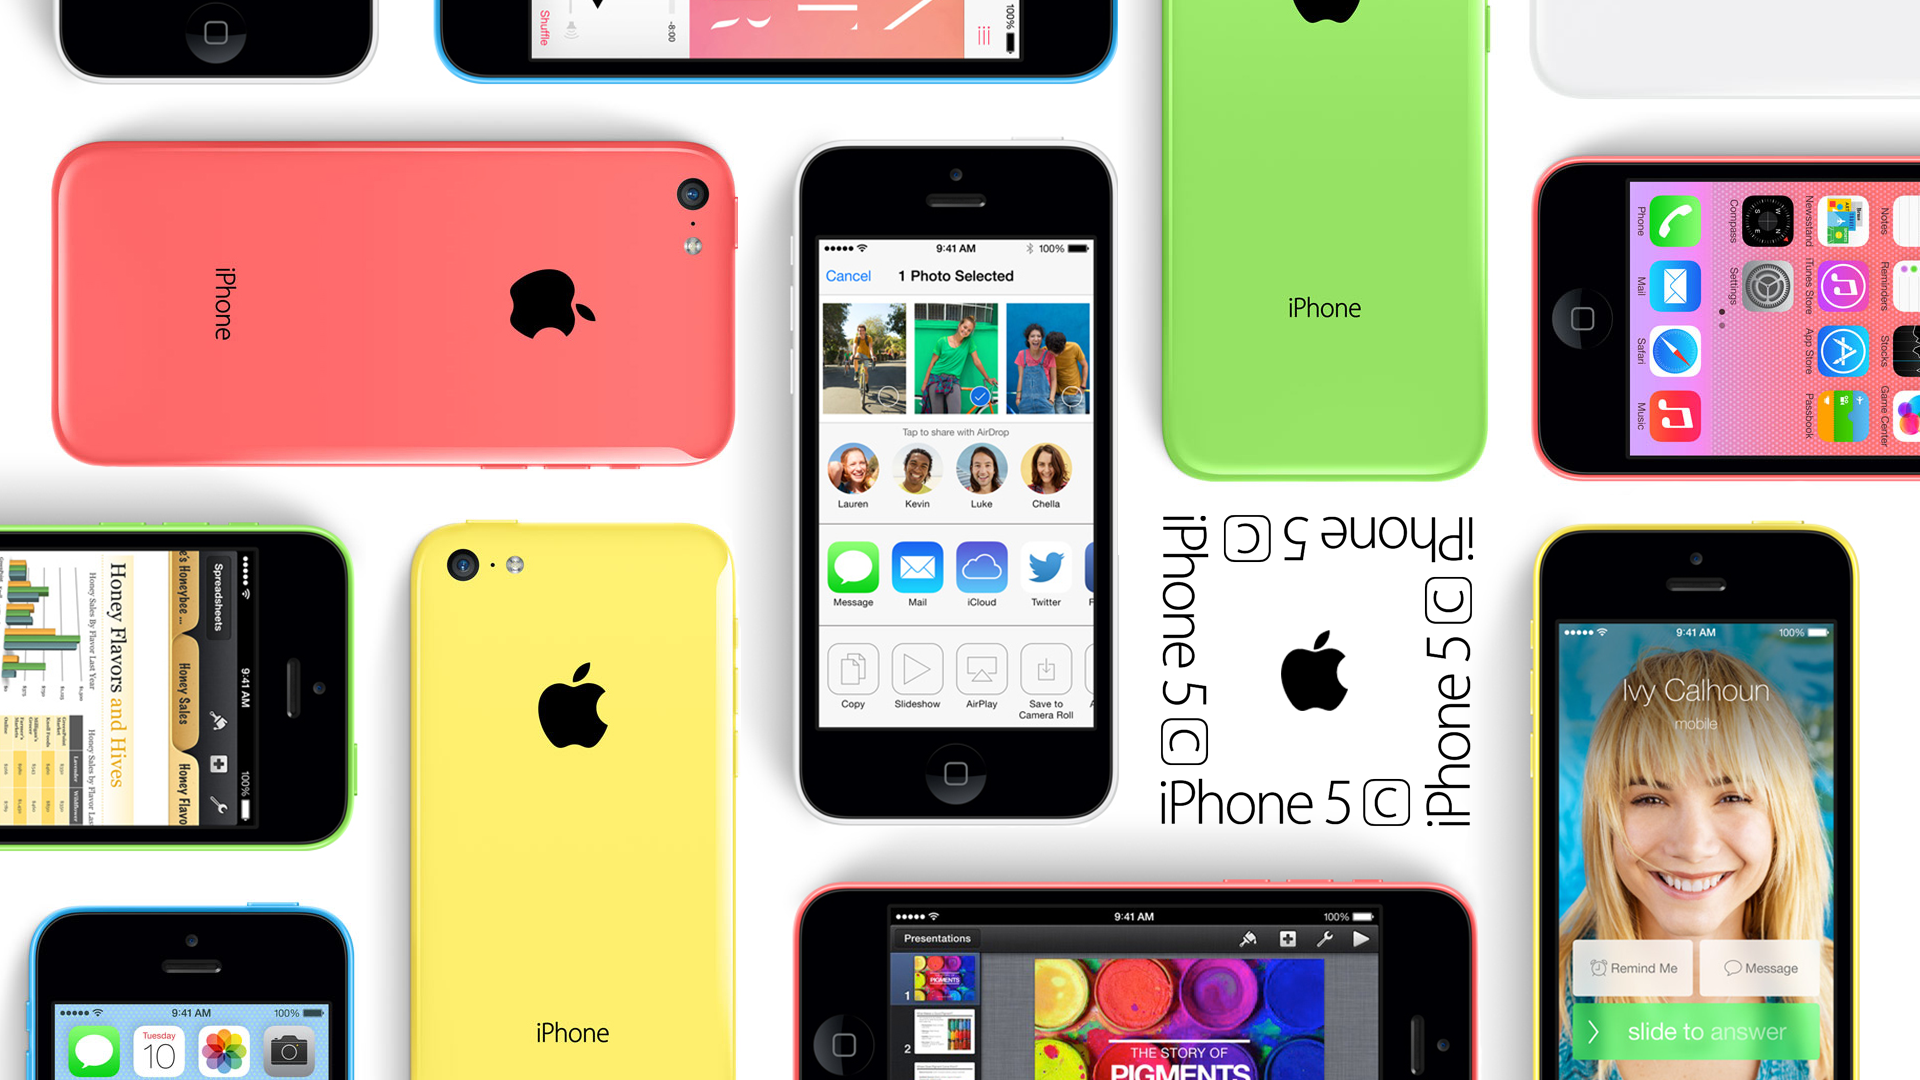 Good Wallpapers For Iphone 5c: IPhone 5c Wallpaper By TheAcunda On DeviantArt